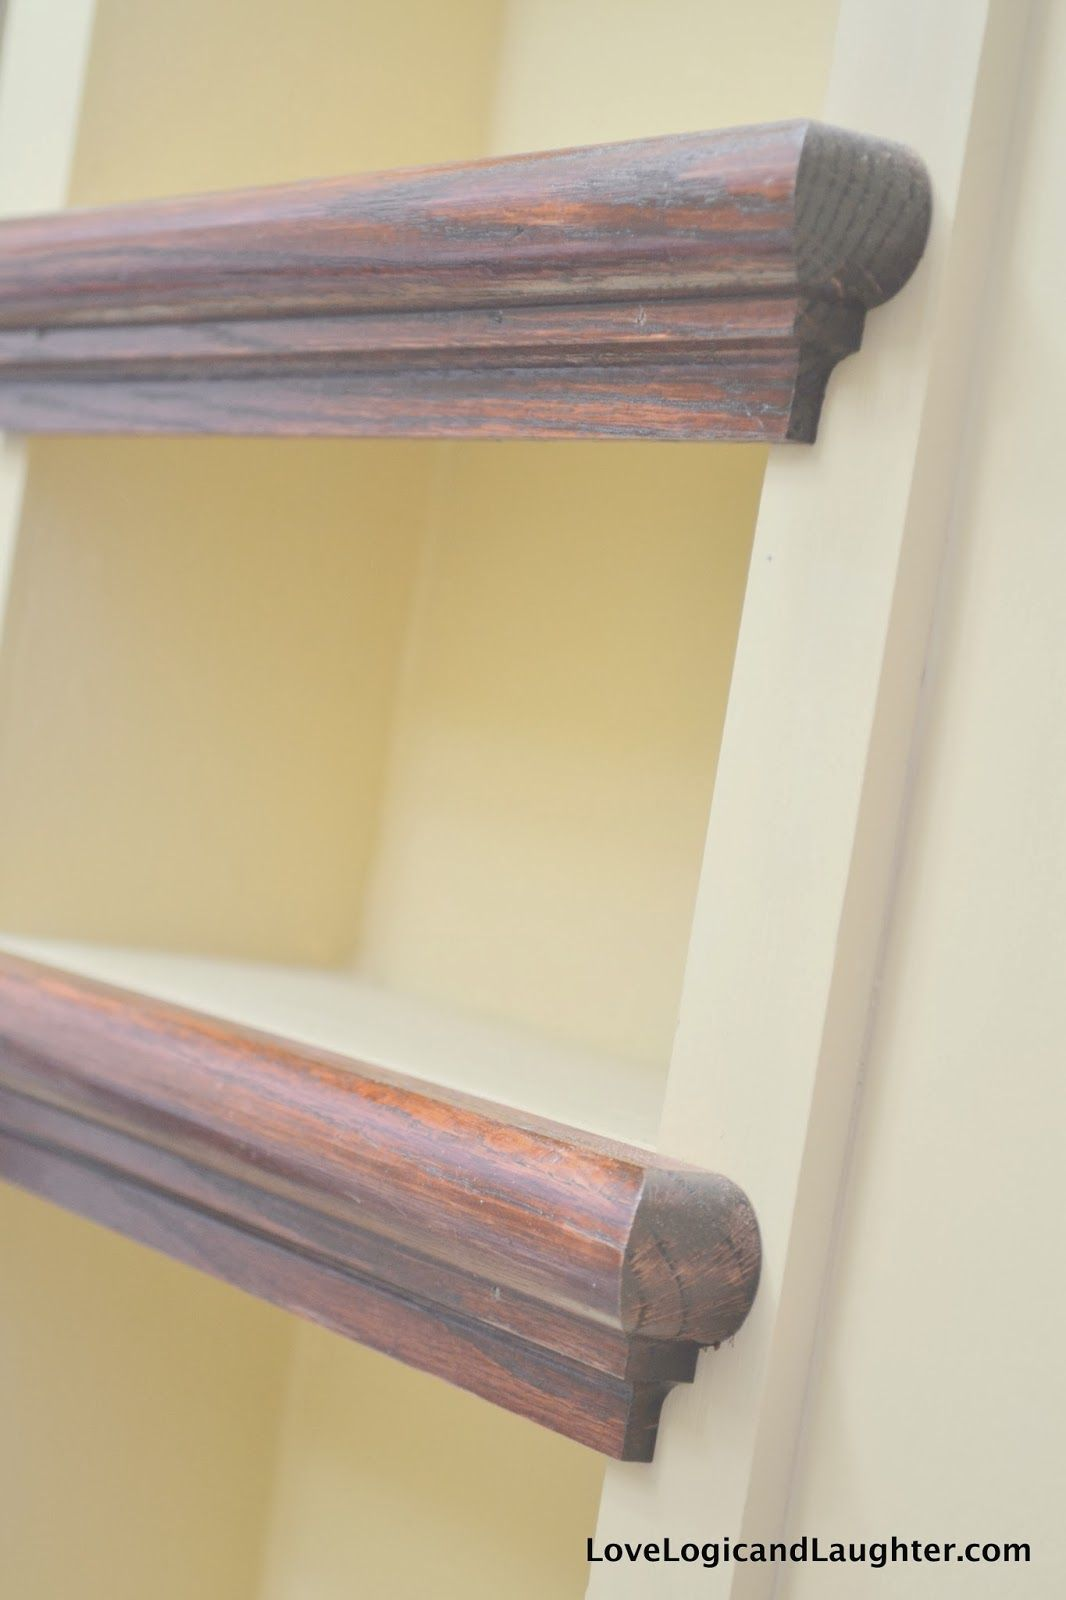 Stairs Shelving Using Stair Tread Nosing As Finishing Trim On Built In